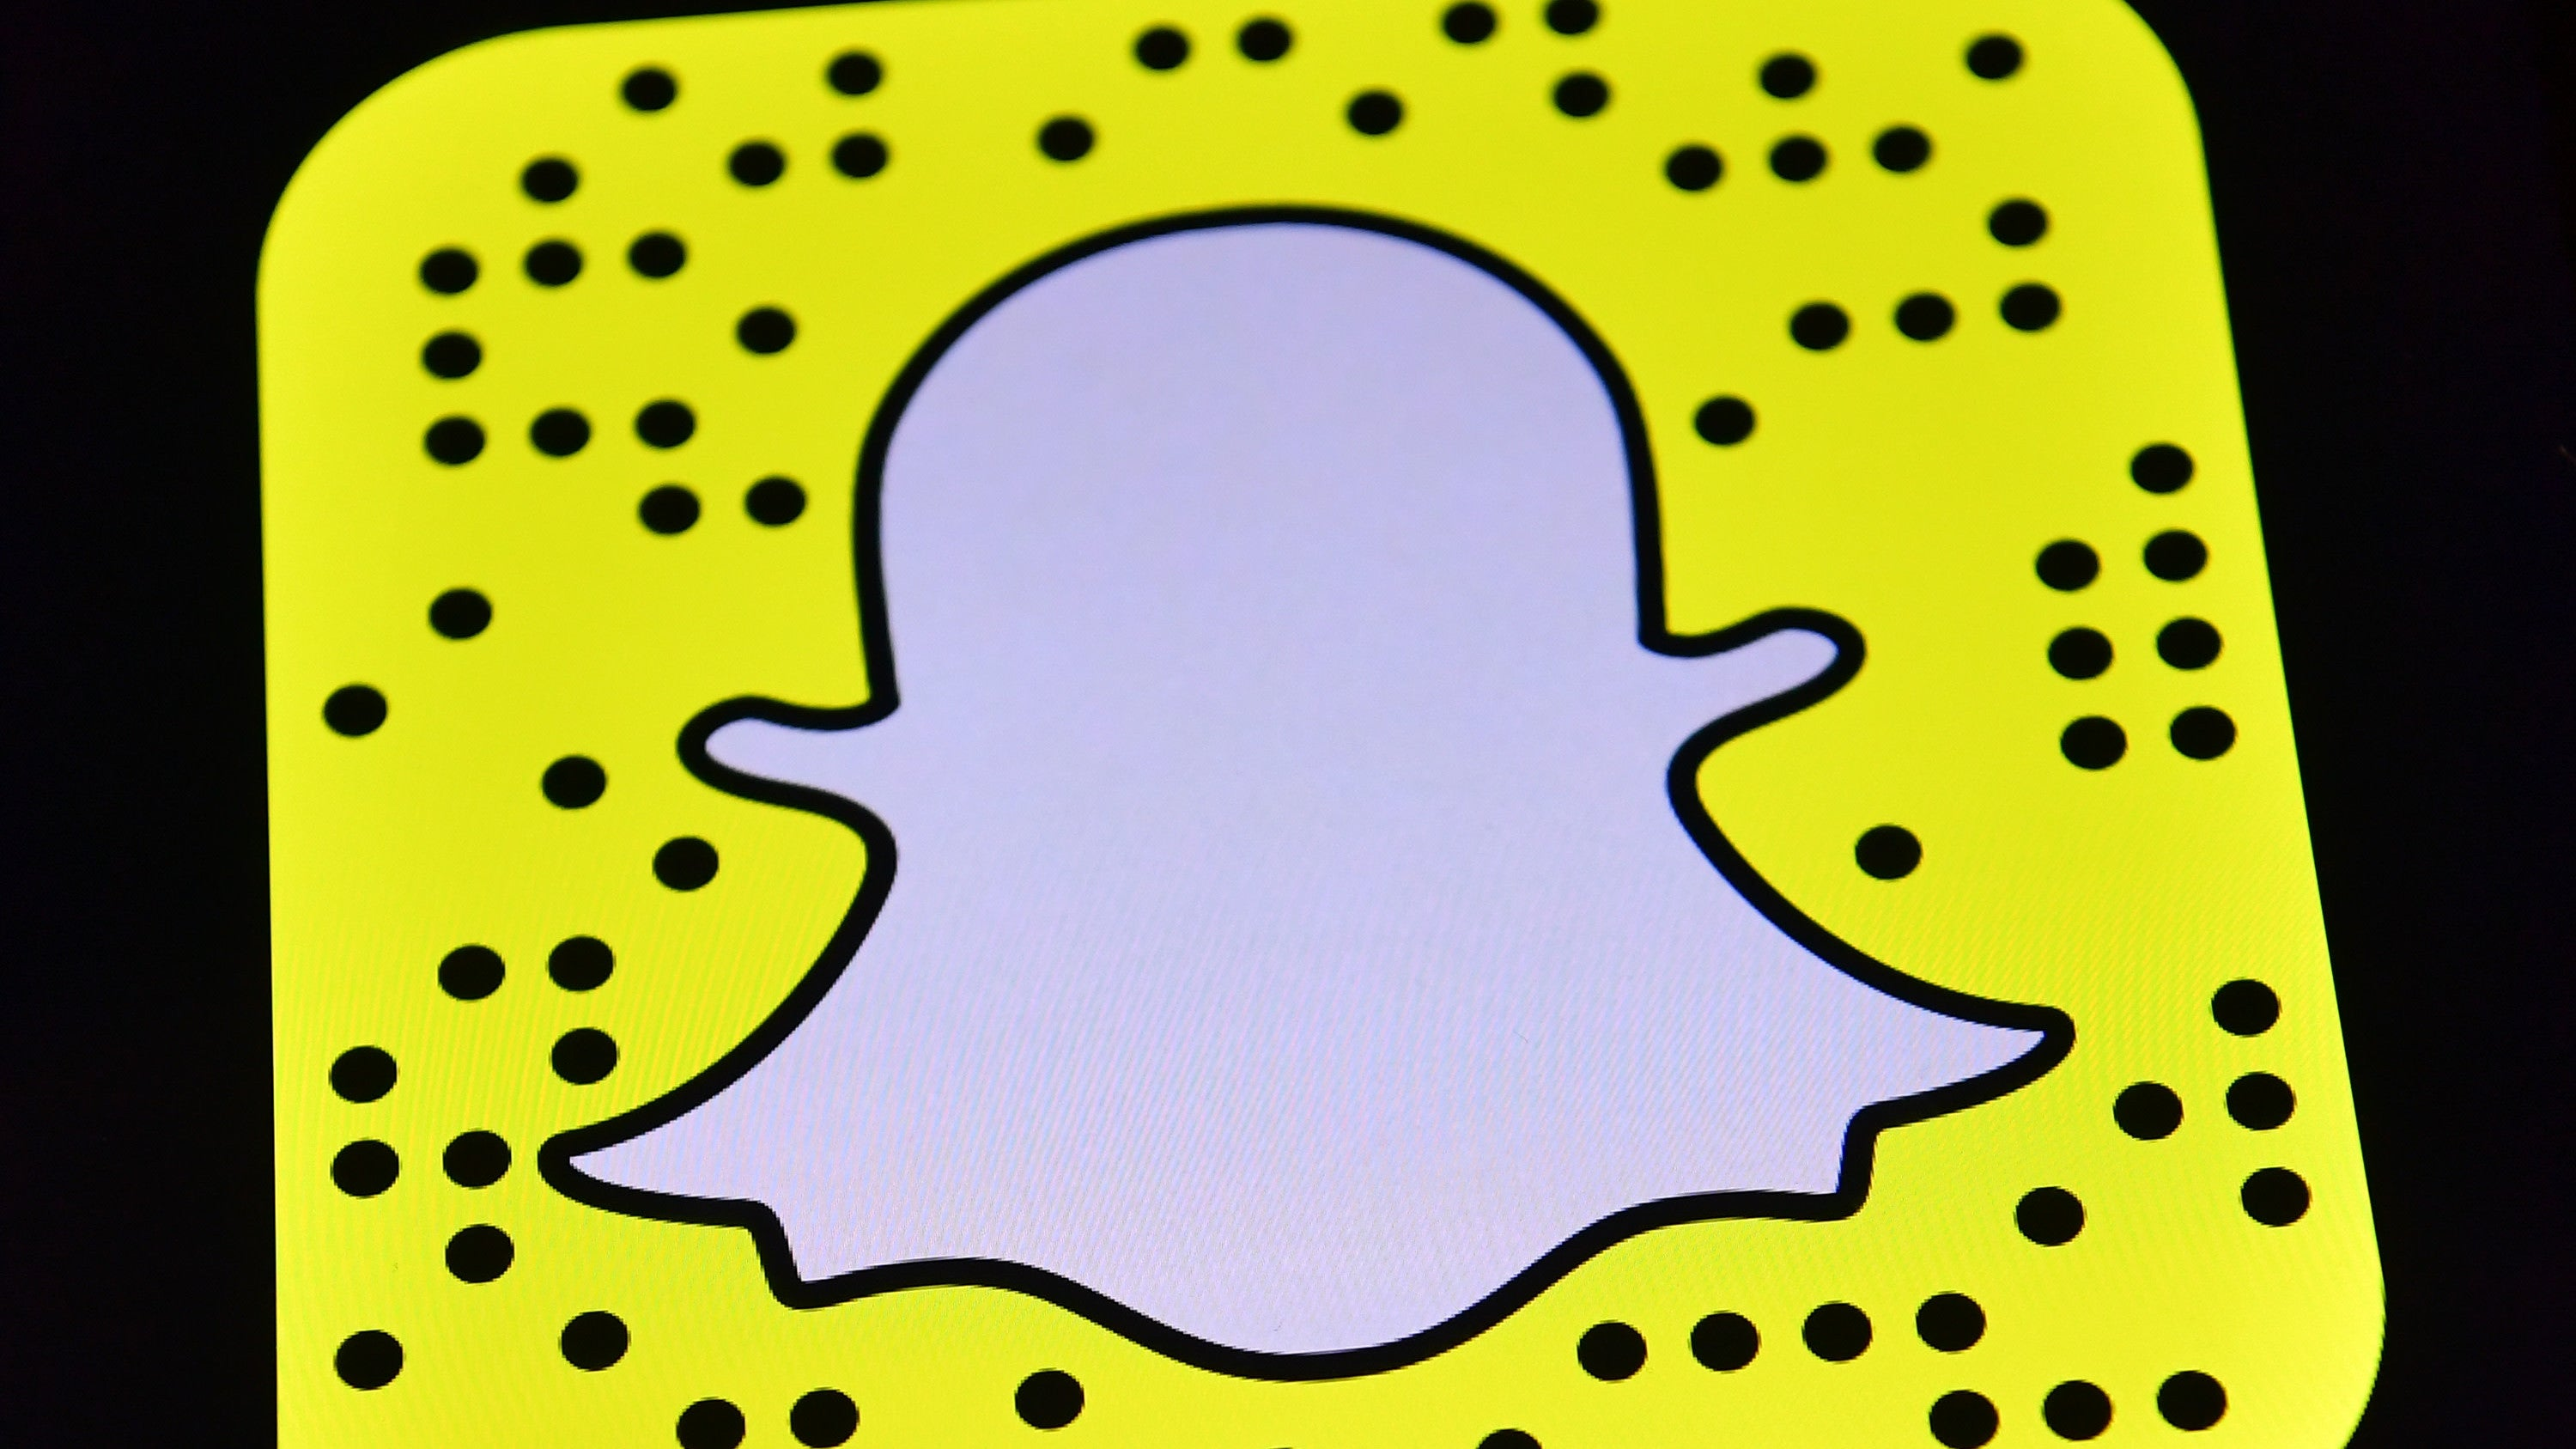 Snapchat Employees Allegedly Misused Internal Tools To Snoop On Users: Report